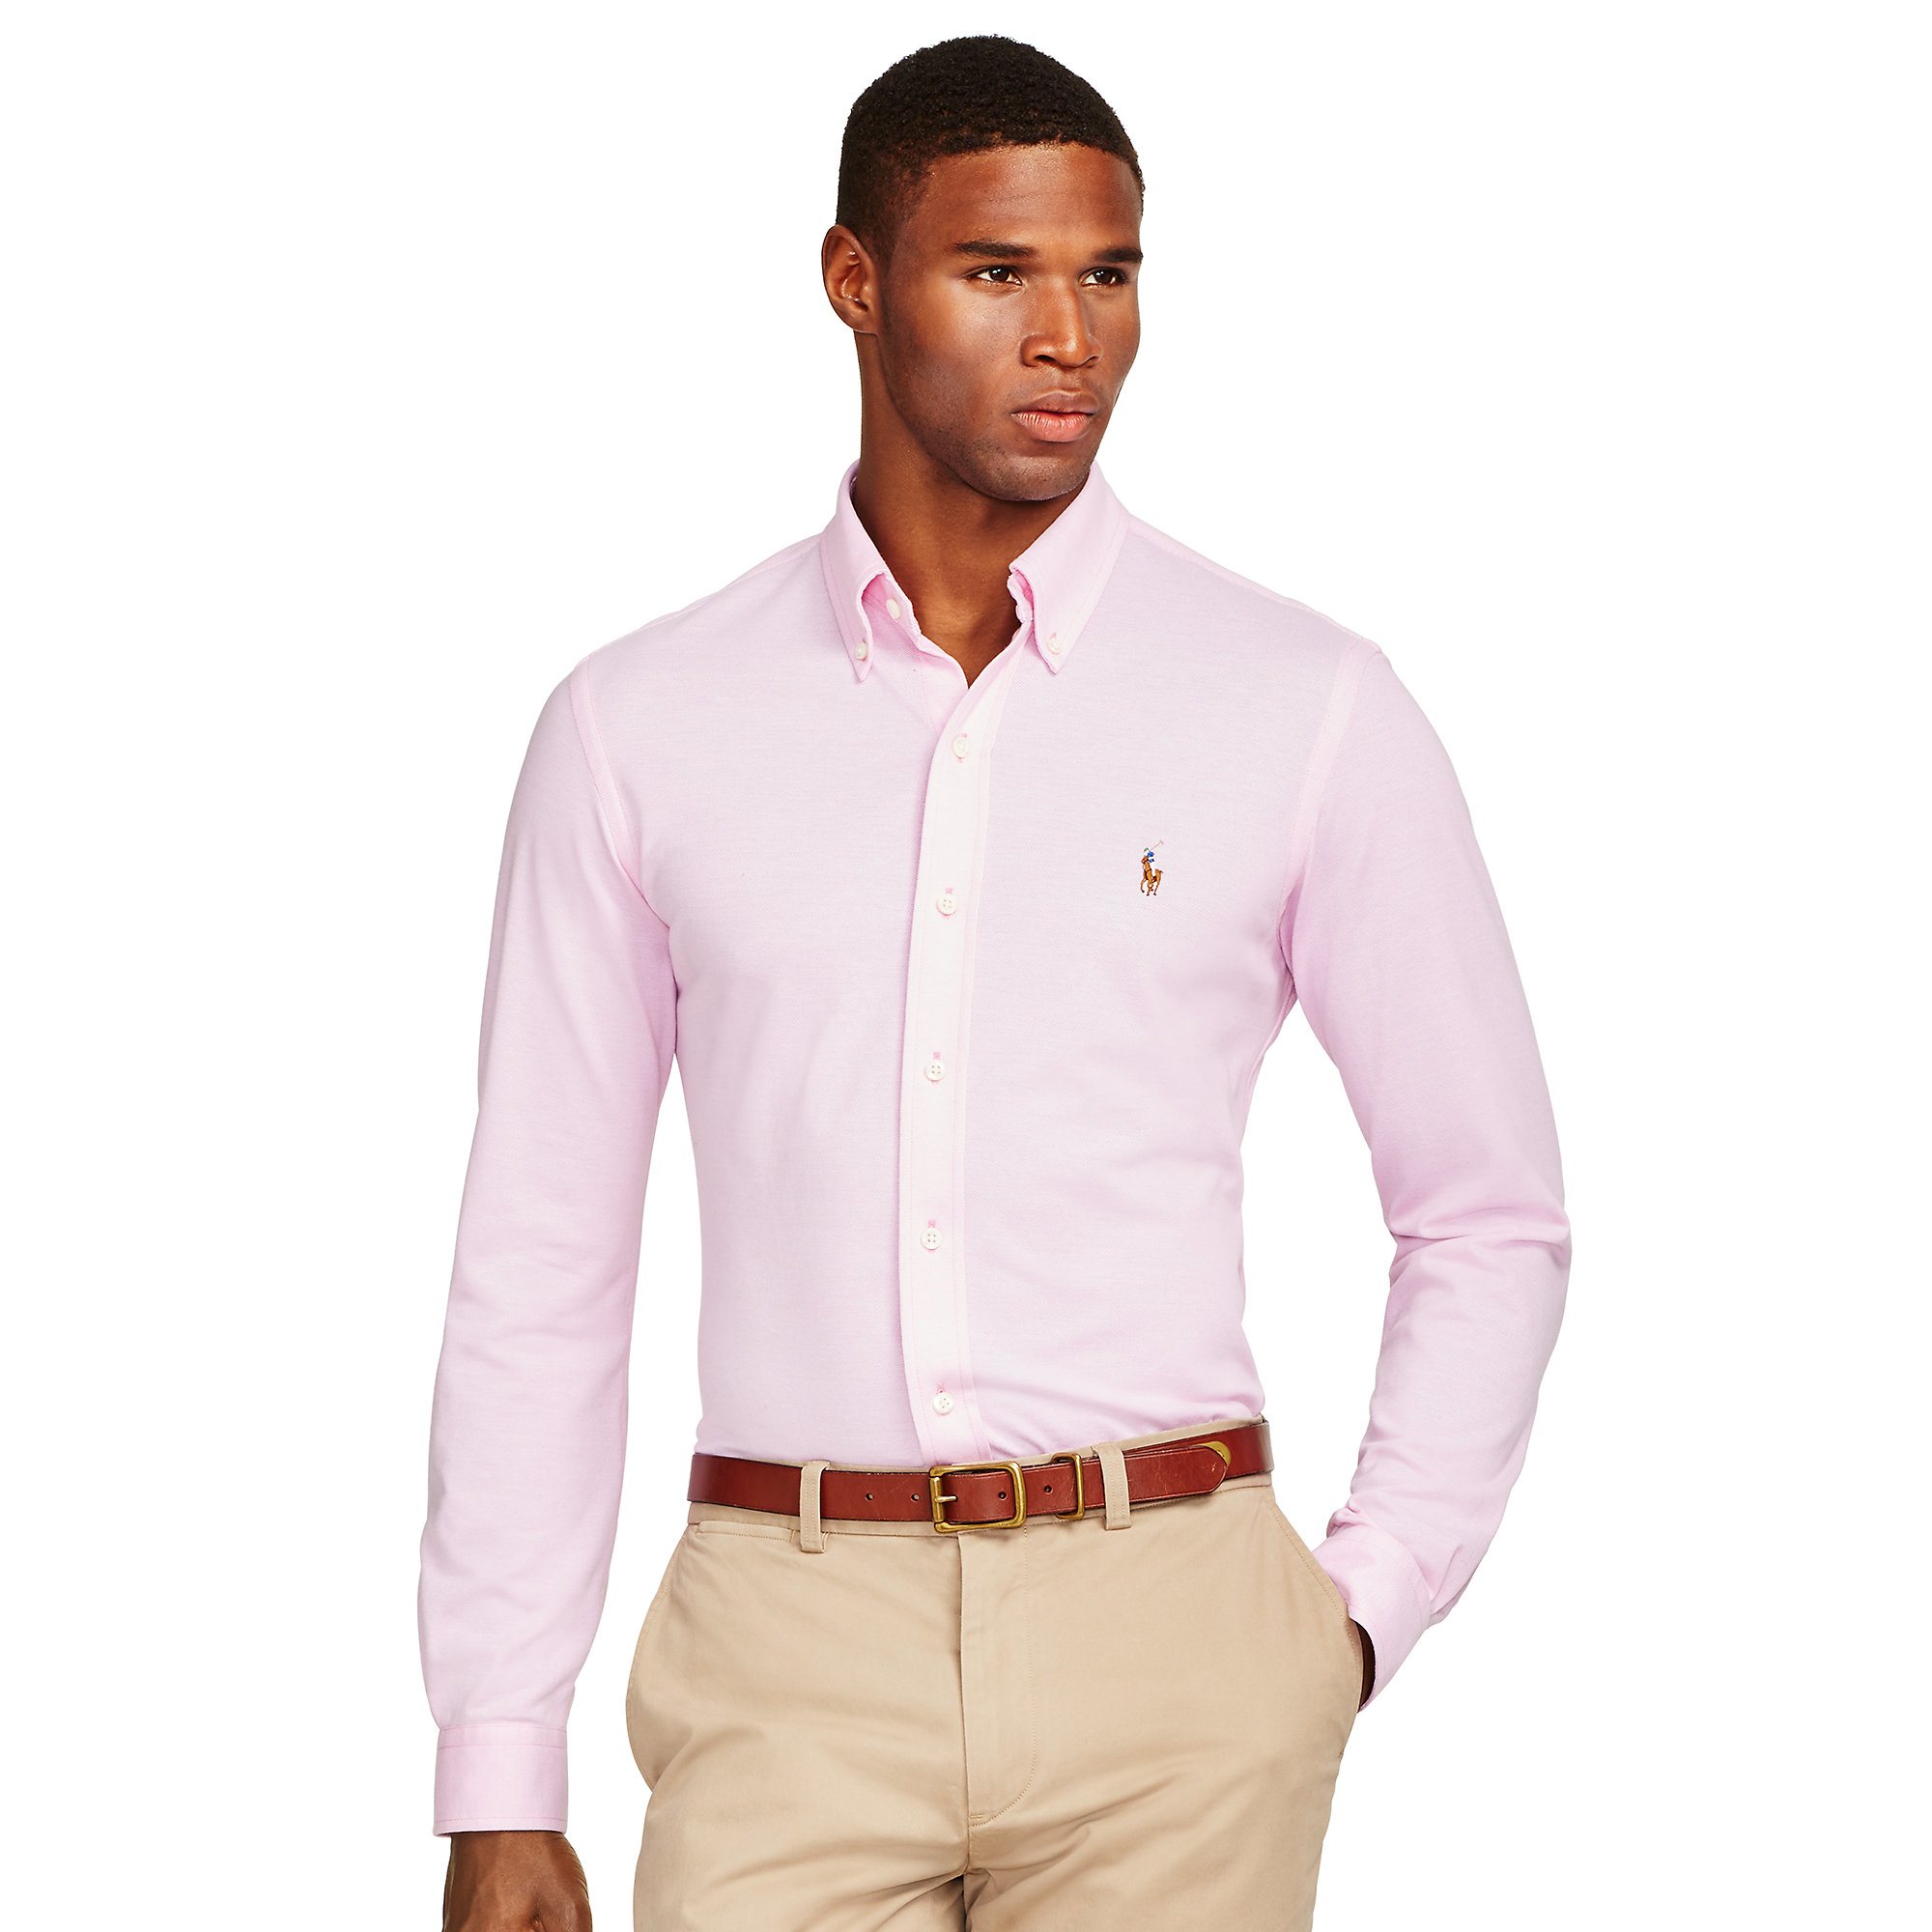 Lyst - Polo Ralph Lauren Knit Oxford Shirt in Pink for Men ac9749221